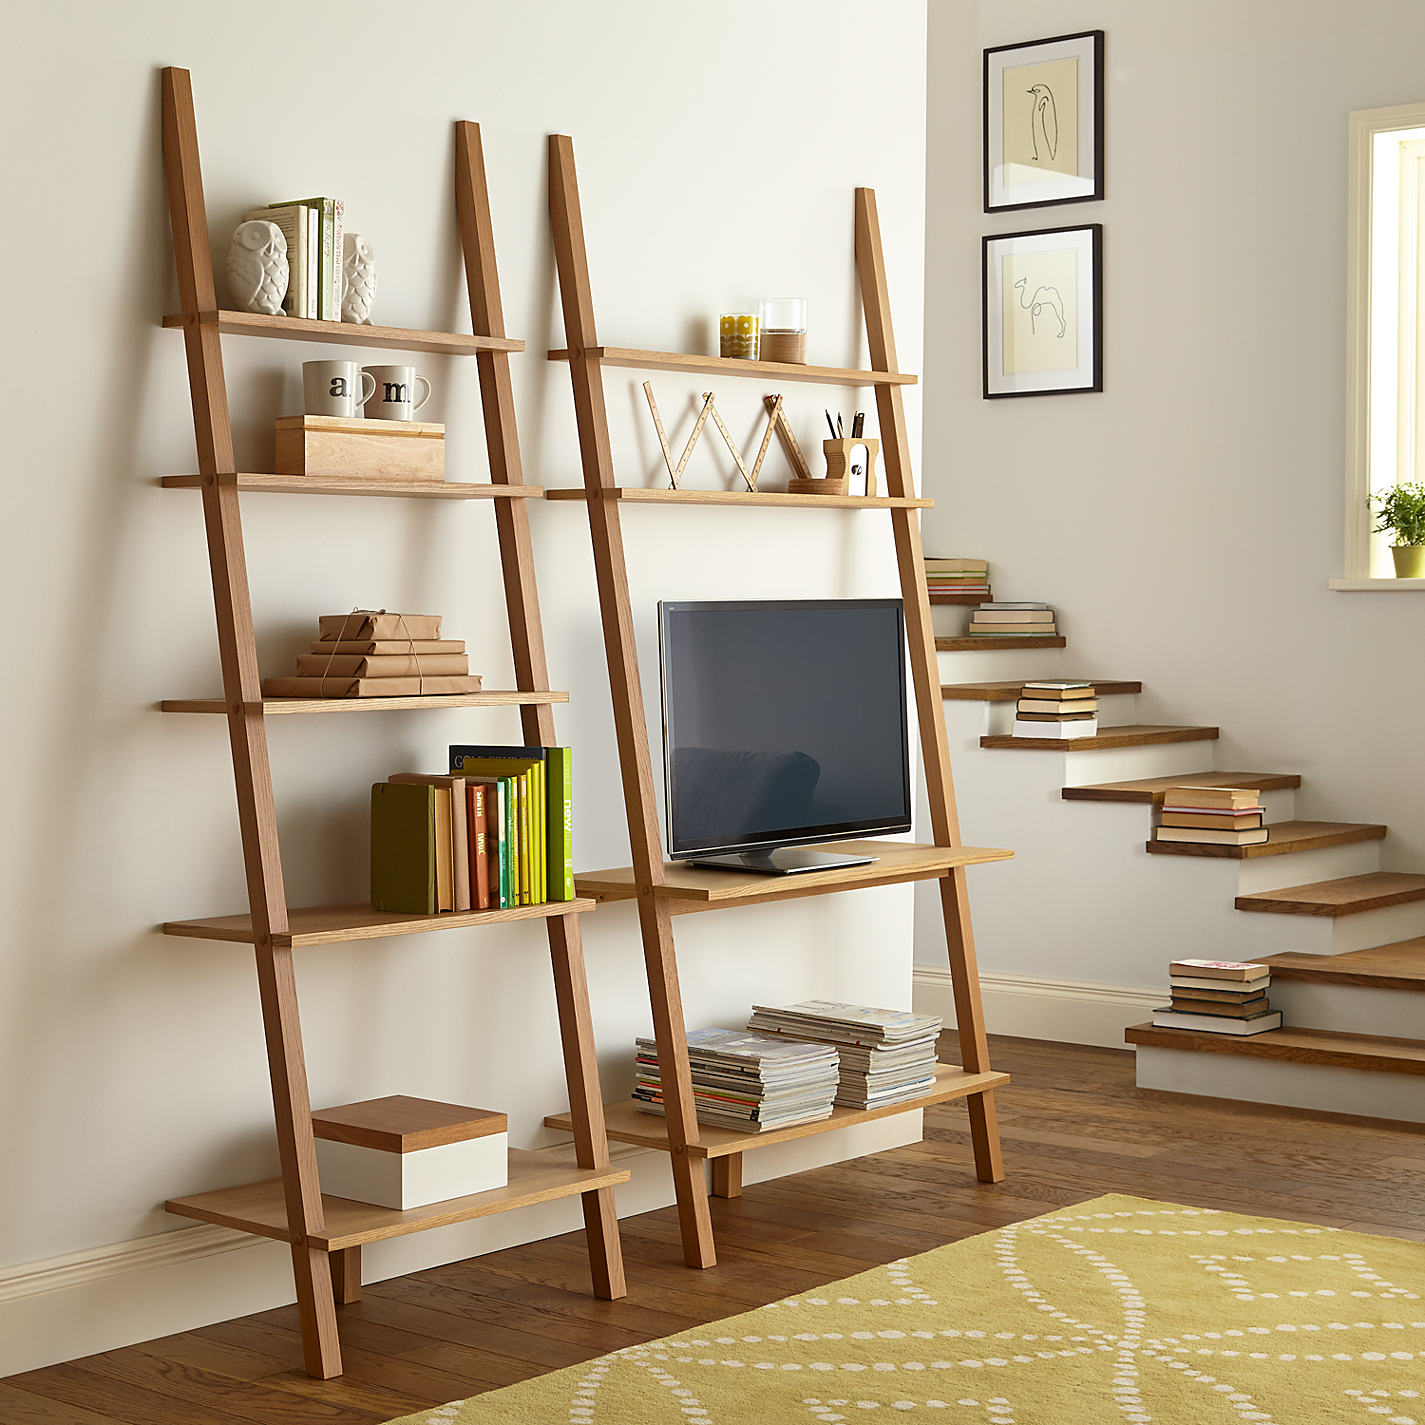 buy-john-lewis-colosseum-bookcase-fsc-certified-oak-online-at-johnlewis-buy-bookcase-simple-design-ideas-stuffed-by-books-and-some-decoration